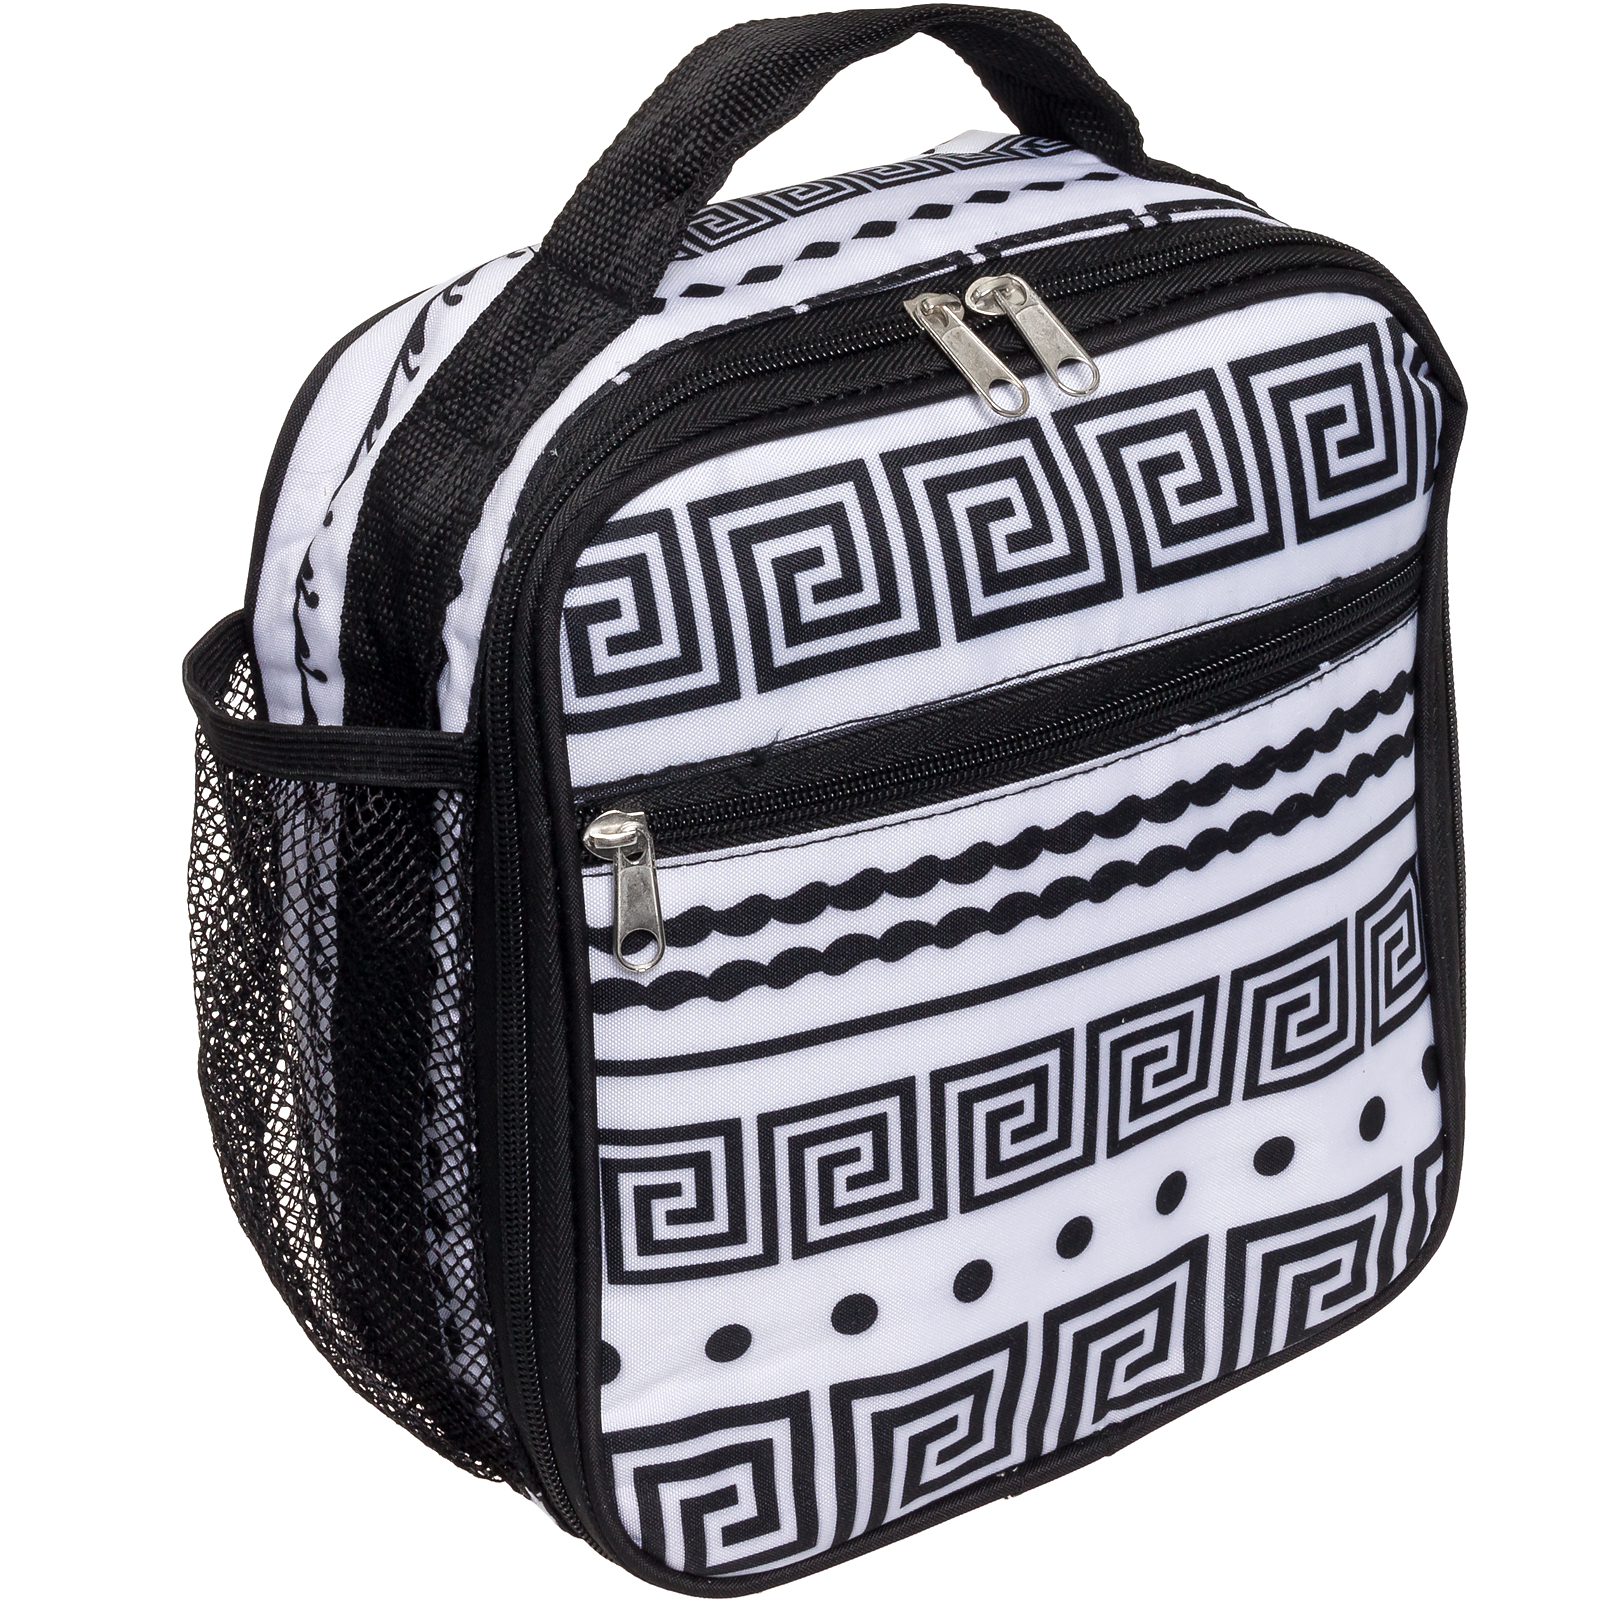 Silver Lilly NEW Women's Insulated Cooler Lunch Box Tote Bag (Black/White Aztec)